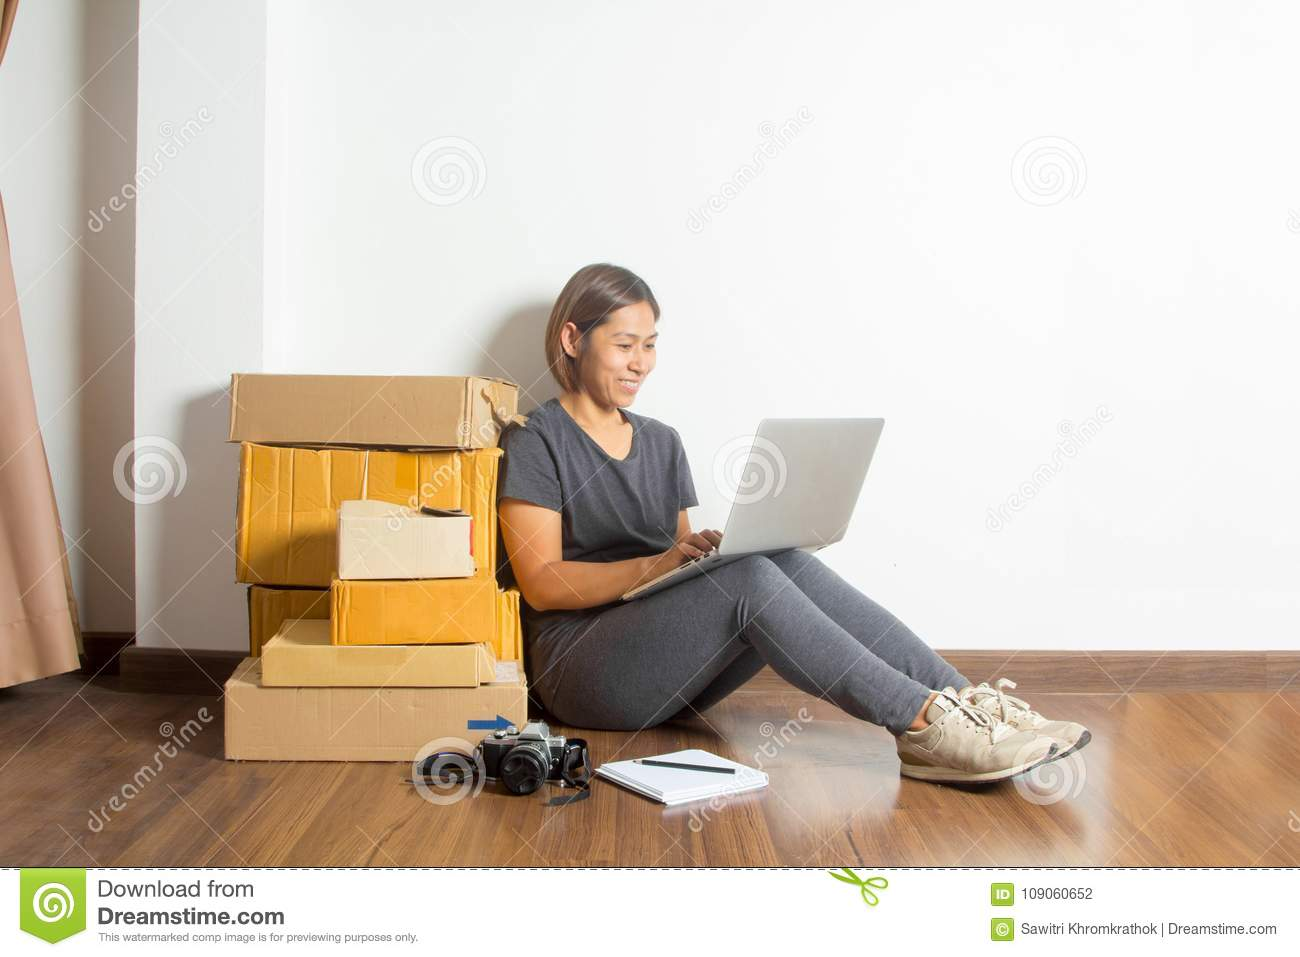 Women Working Laptop Computer From Home Stock Photo - Image of ...